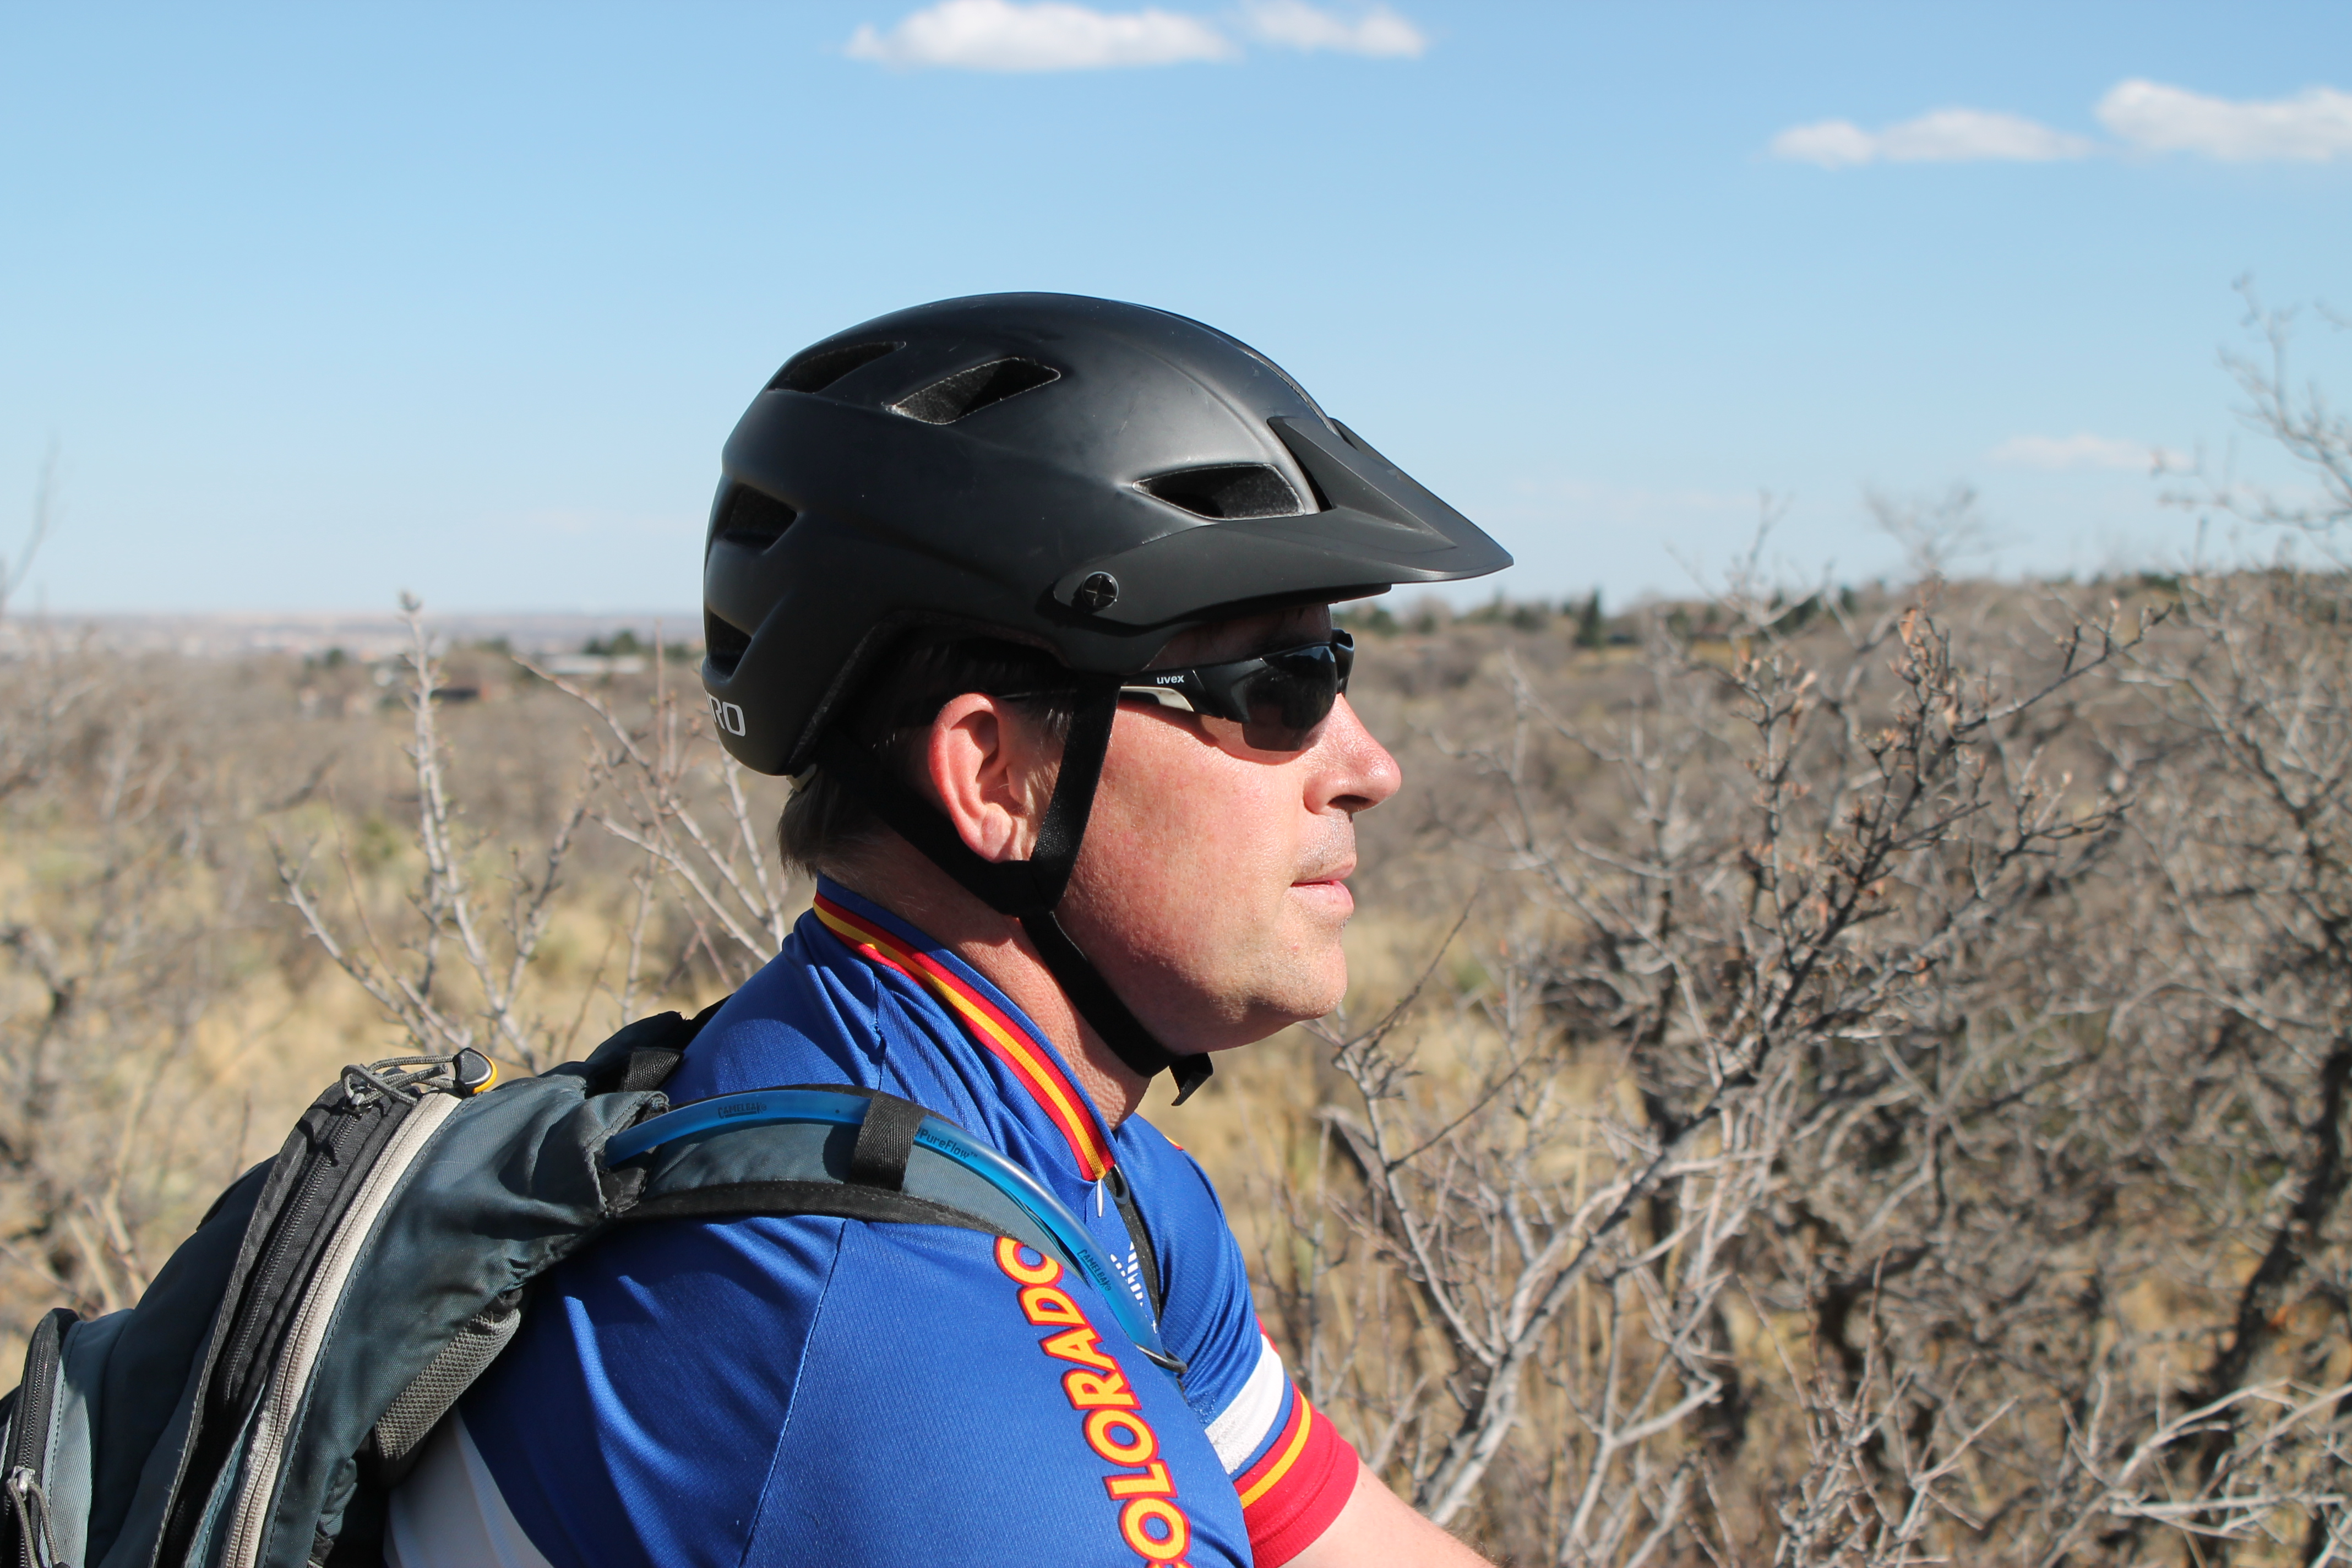 Review: Featuring the Giro Feature MIPS Mountain Bike Helmet - Singletracks Mountain Bike News